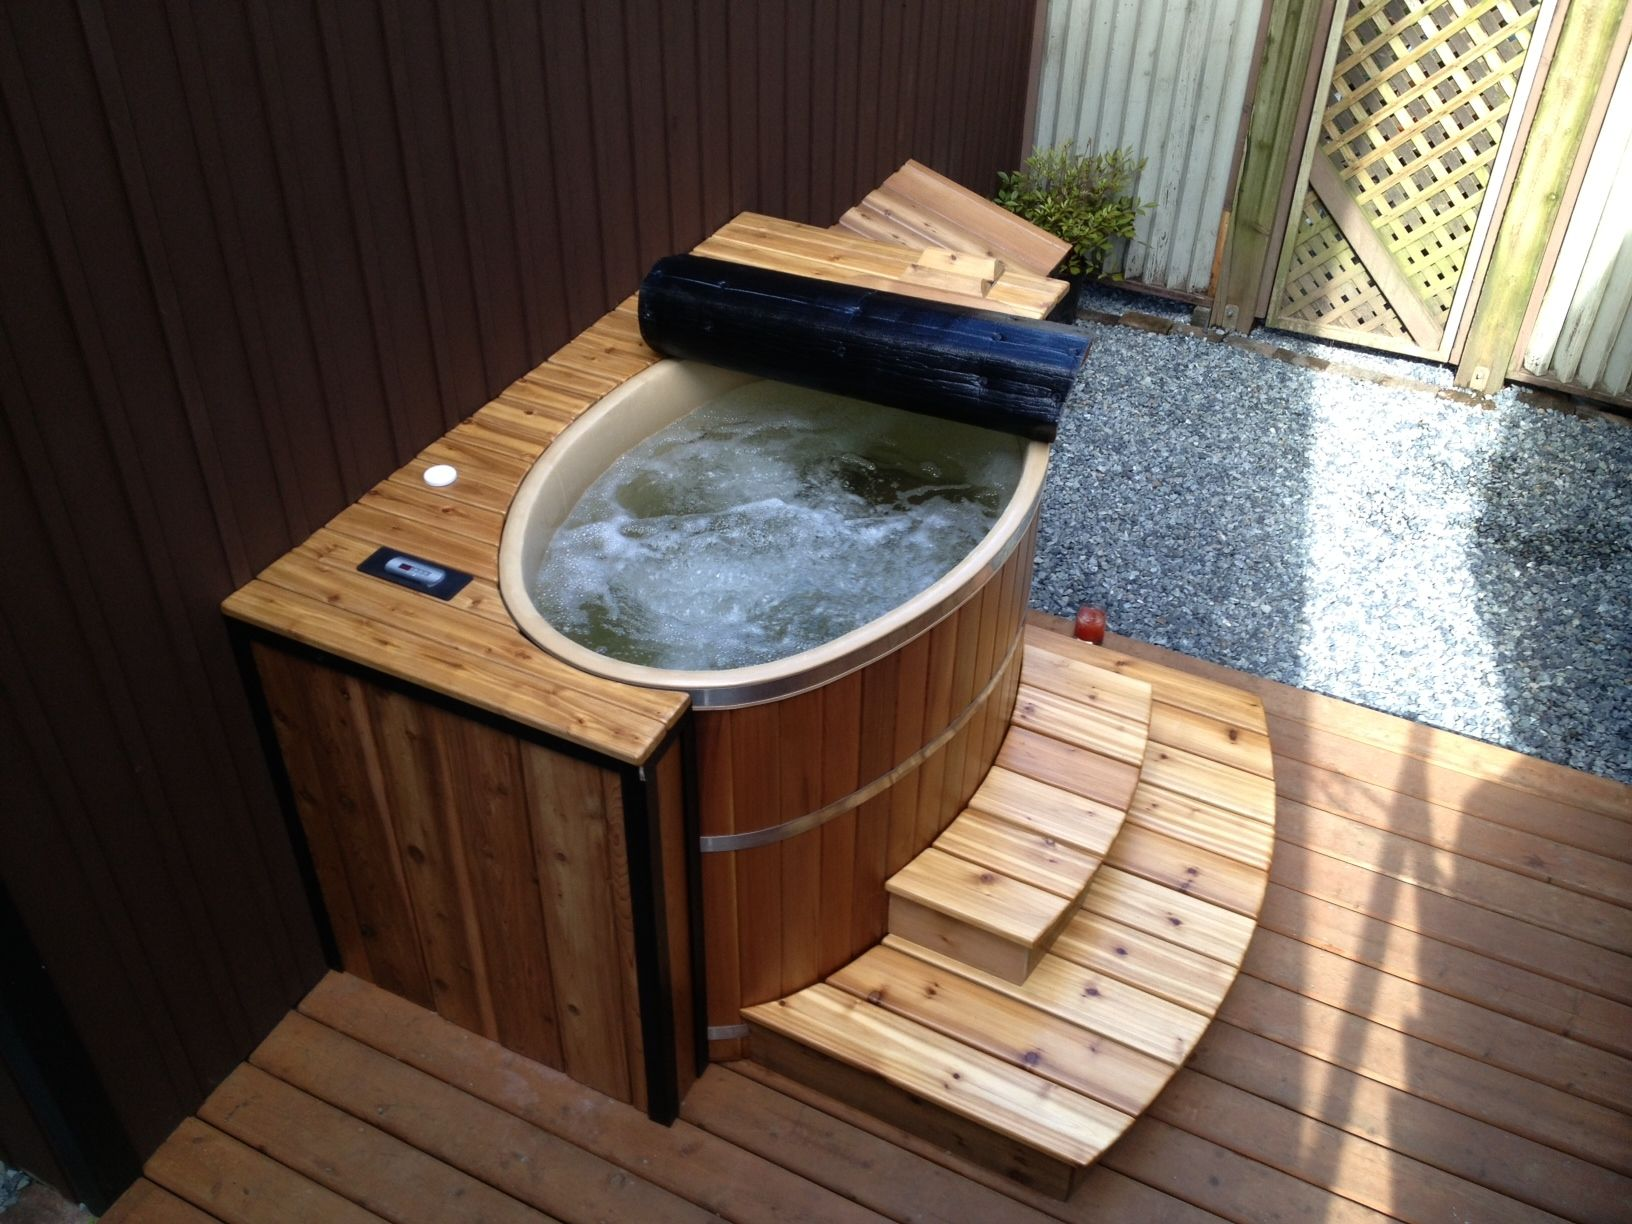 A Tubfor2 oval cedar hot tub is perfect for small